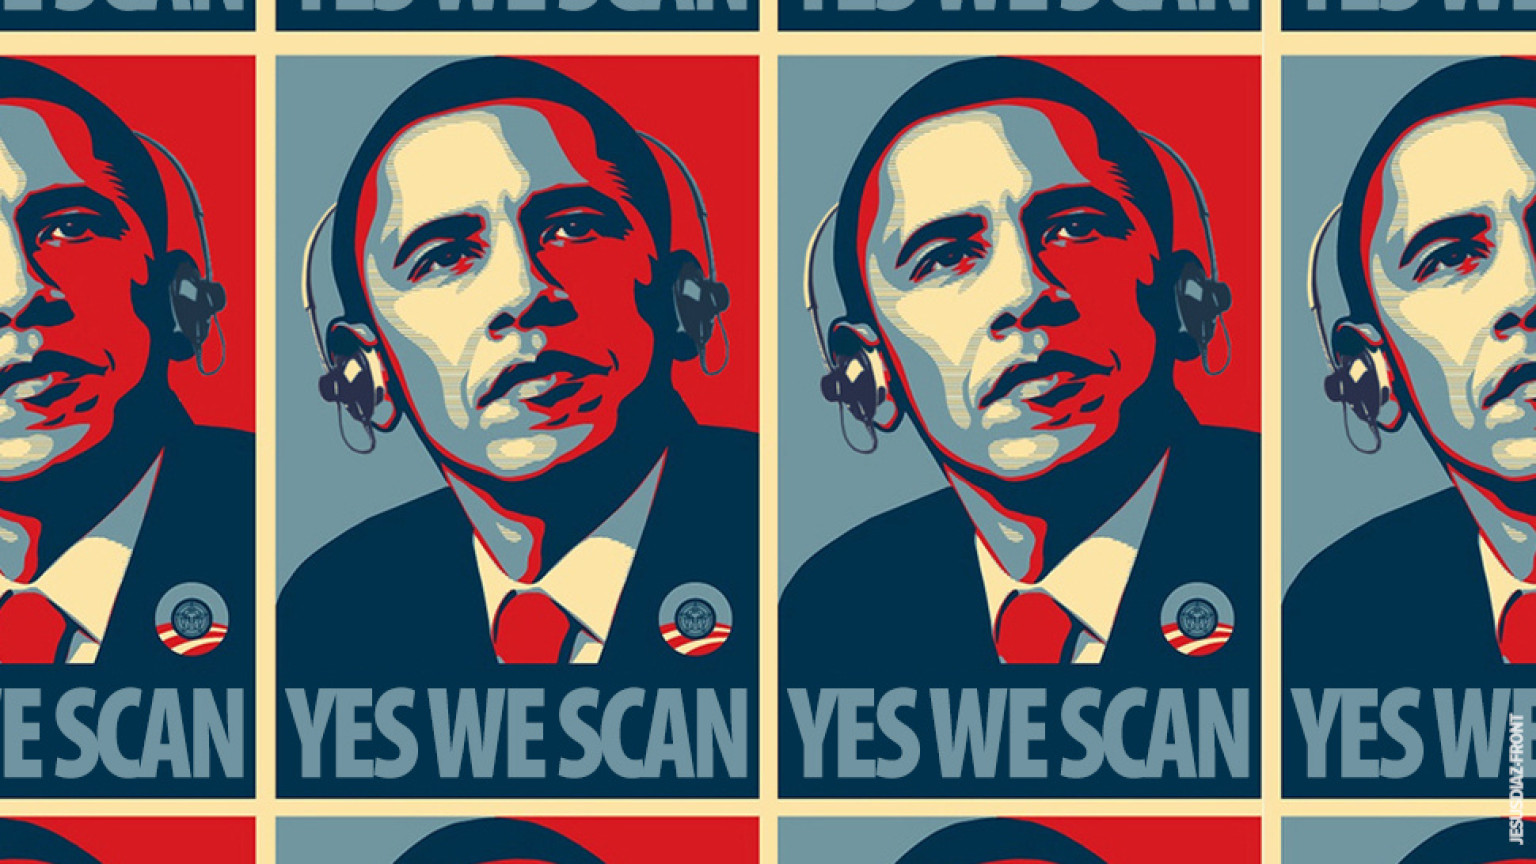 o-YES-WE-SCAN-facebook